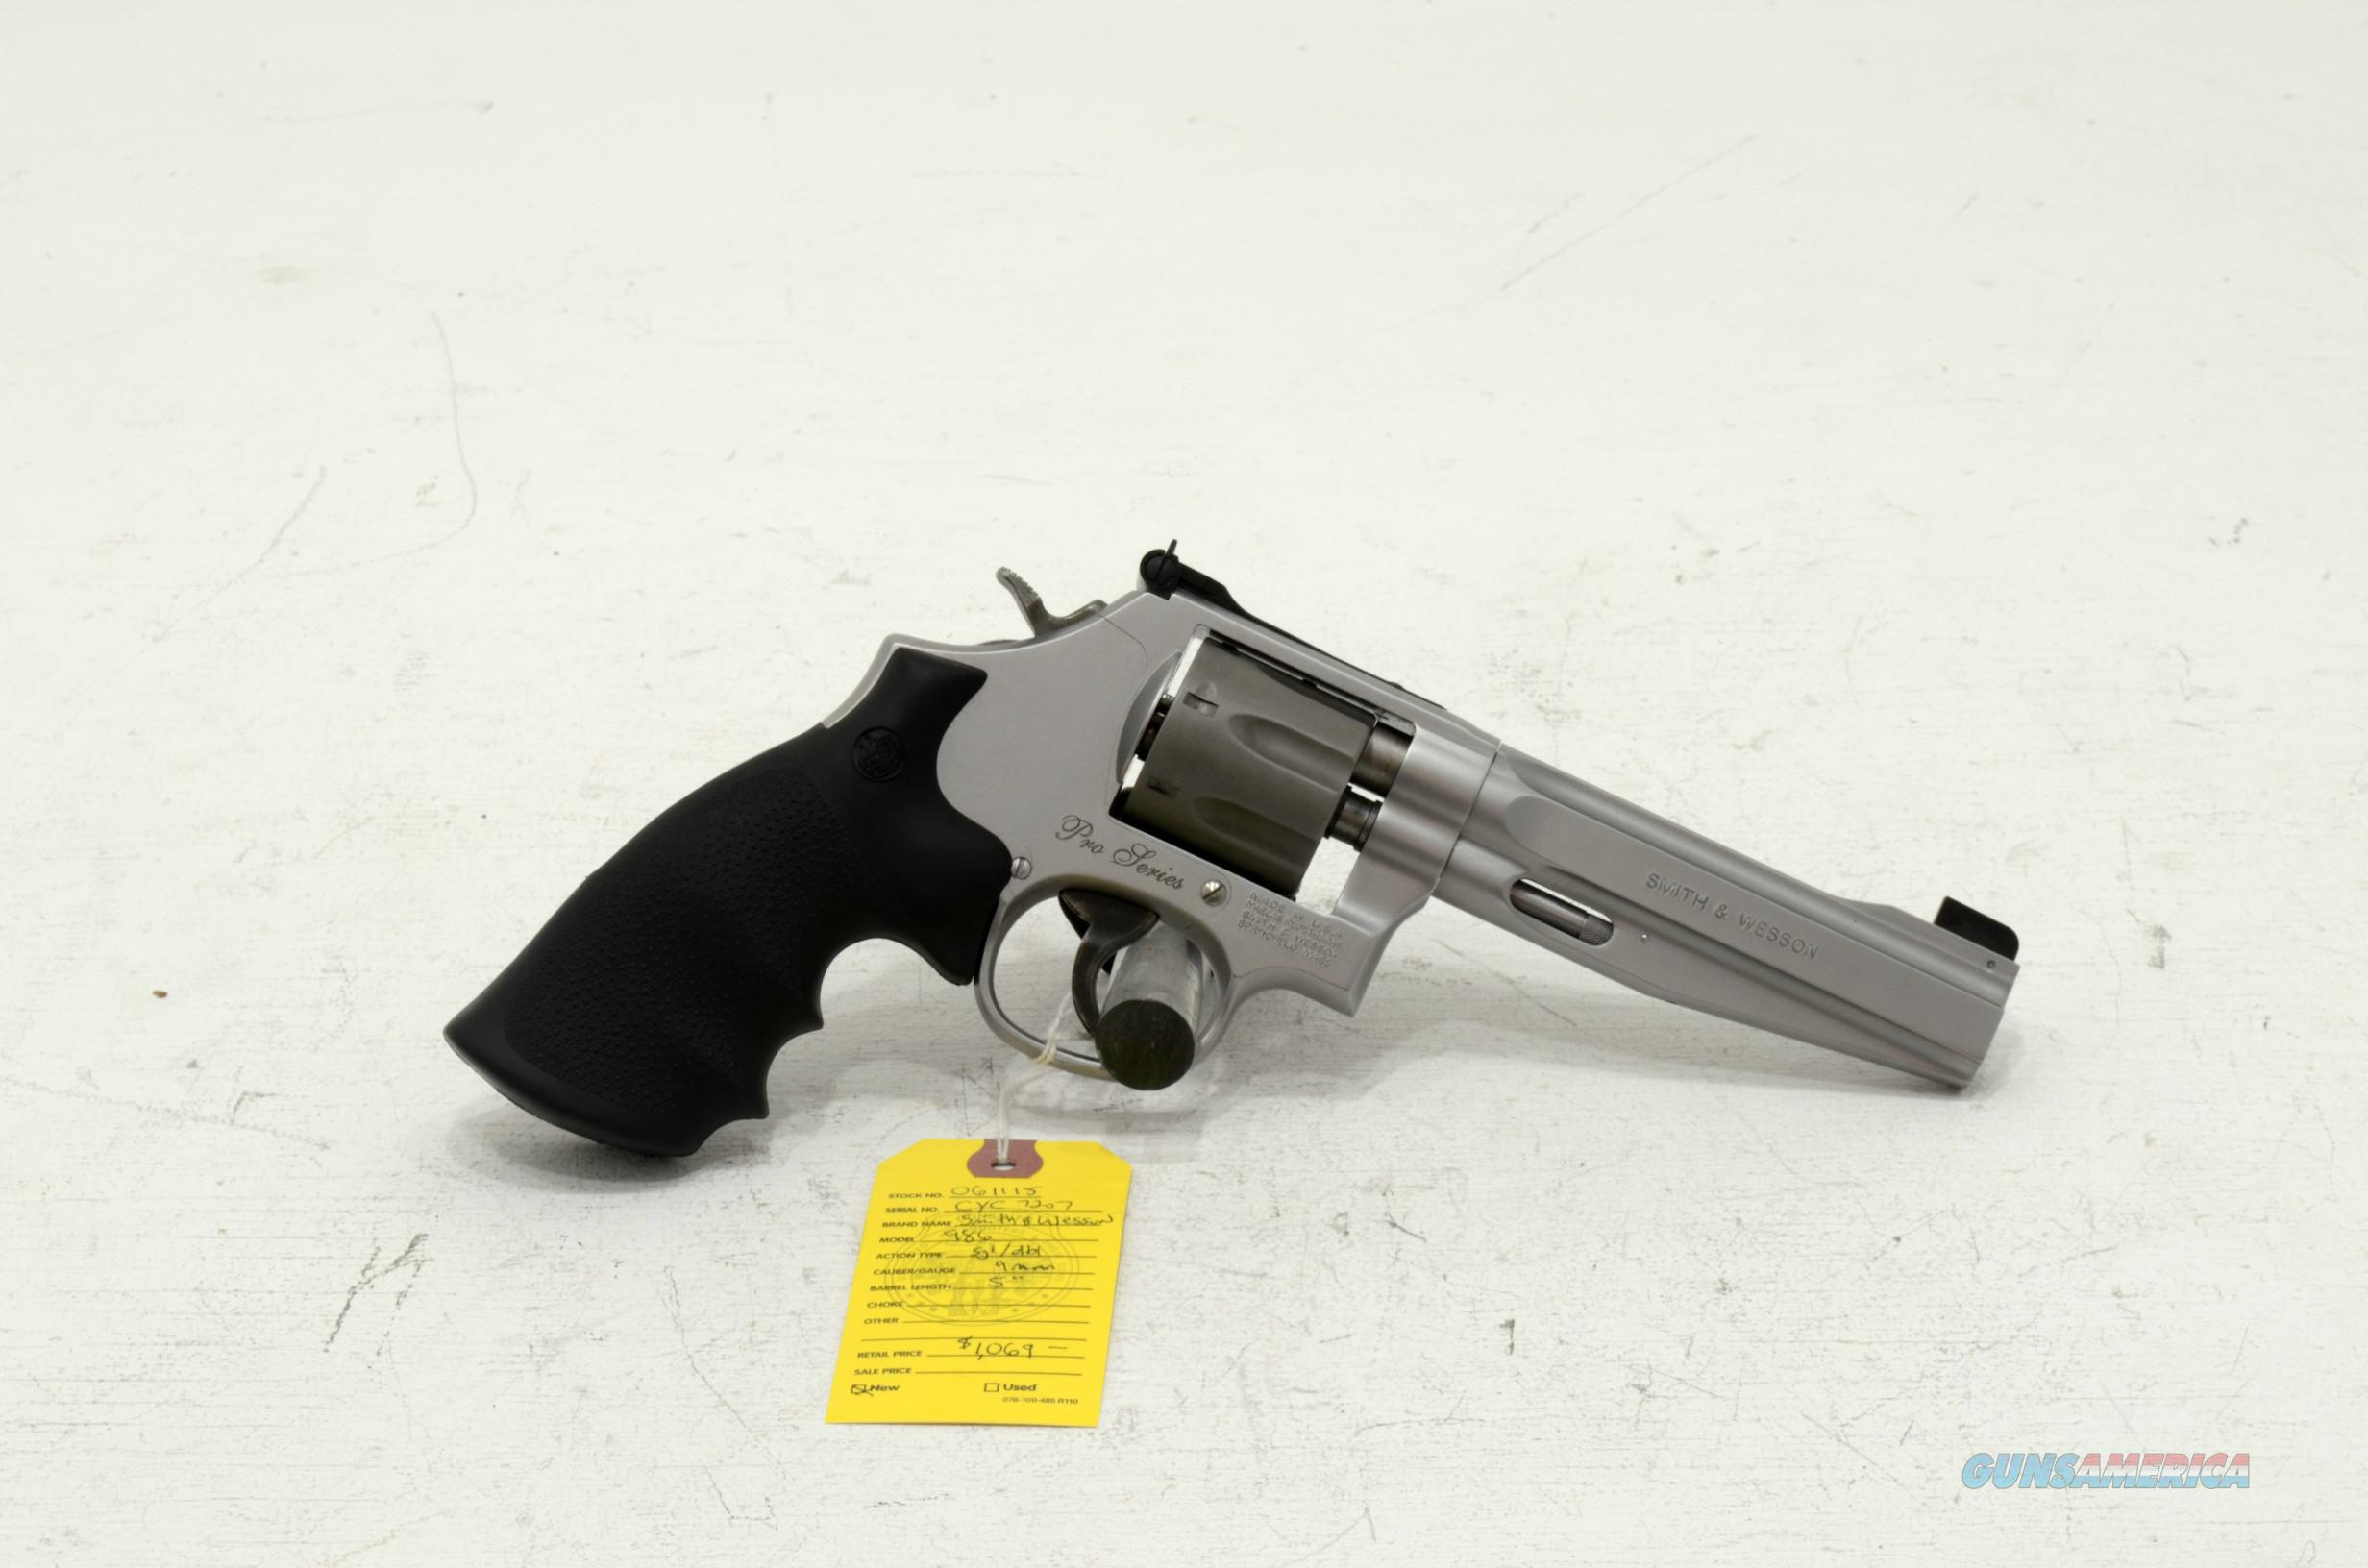 "New Smith & Wesson 986 Pro series 9mm 7 shot 5"" barrel  Guns > Pistols > Smith & Wesson Revolvers > Full Frame Revolver"